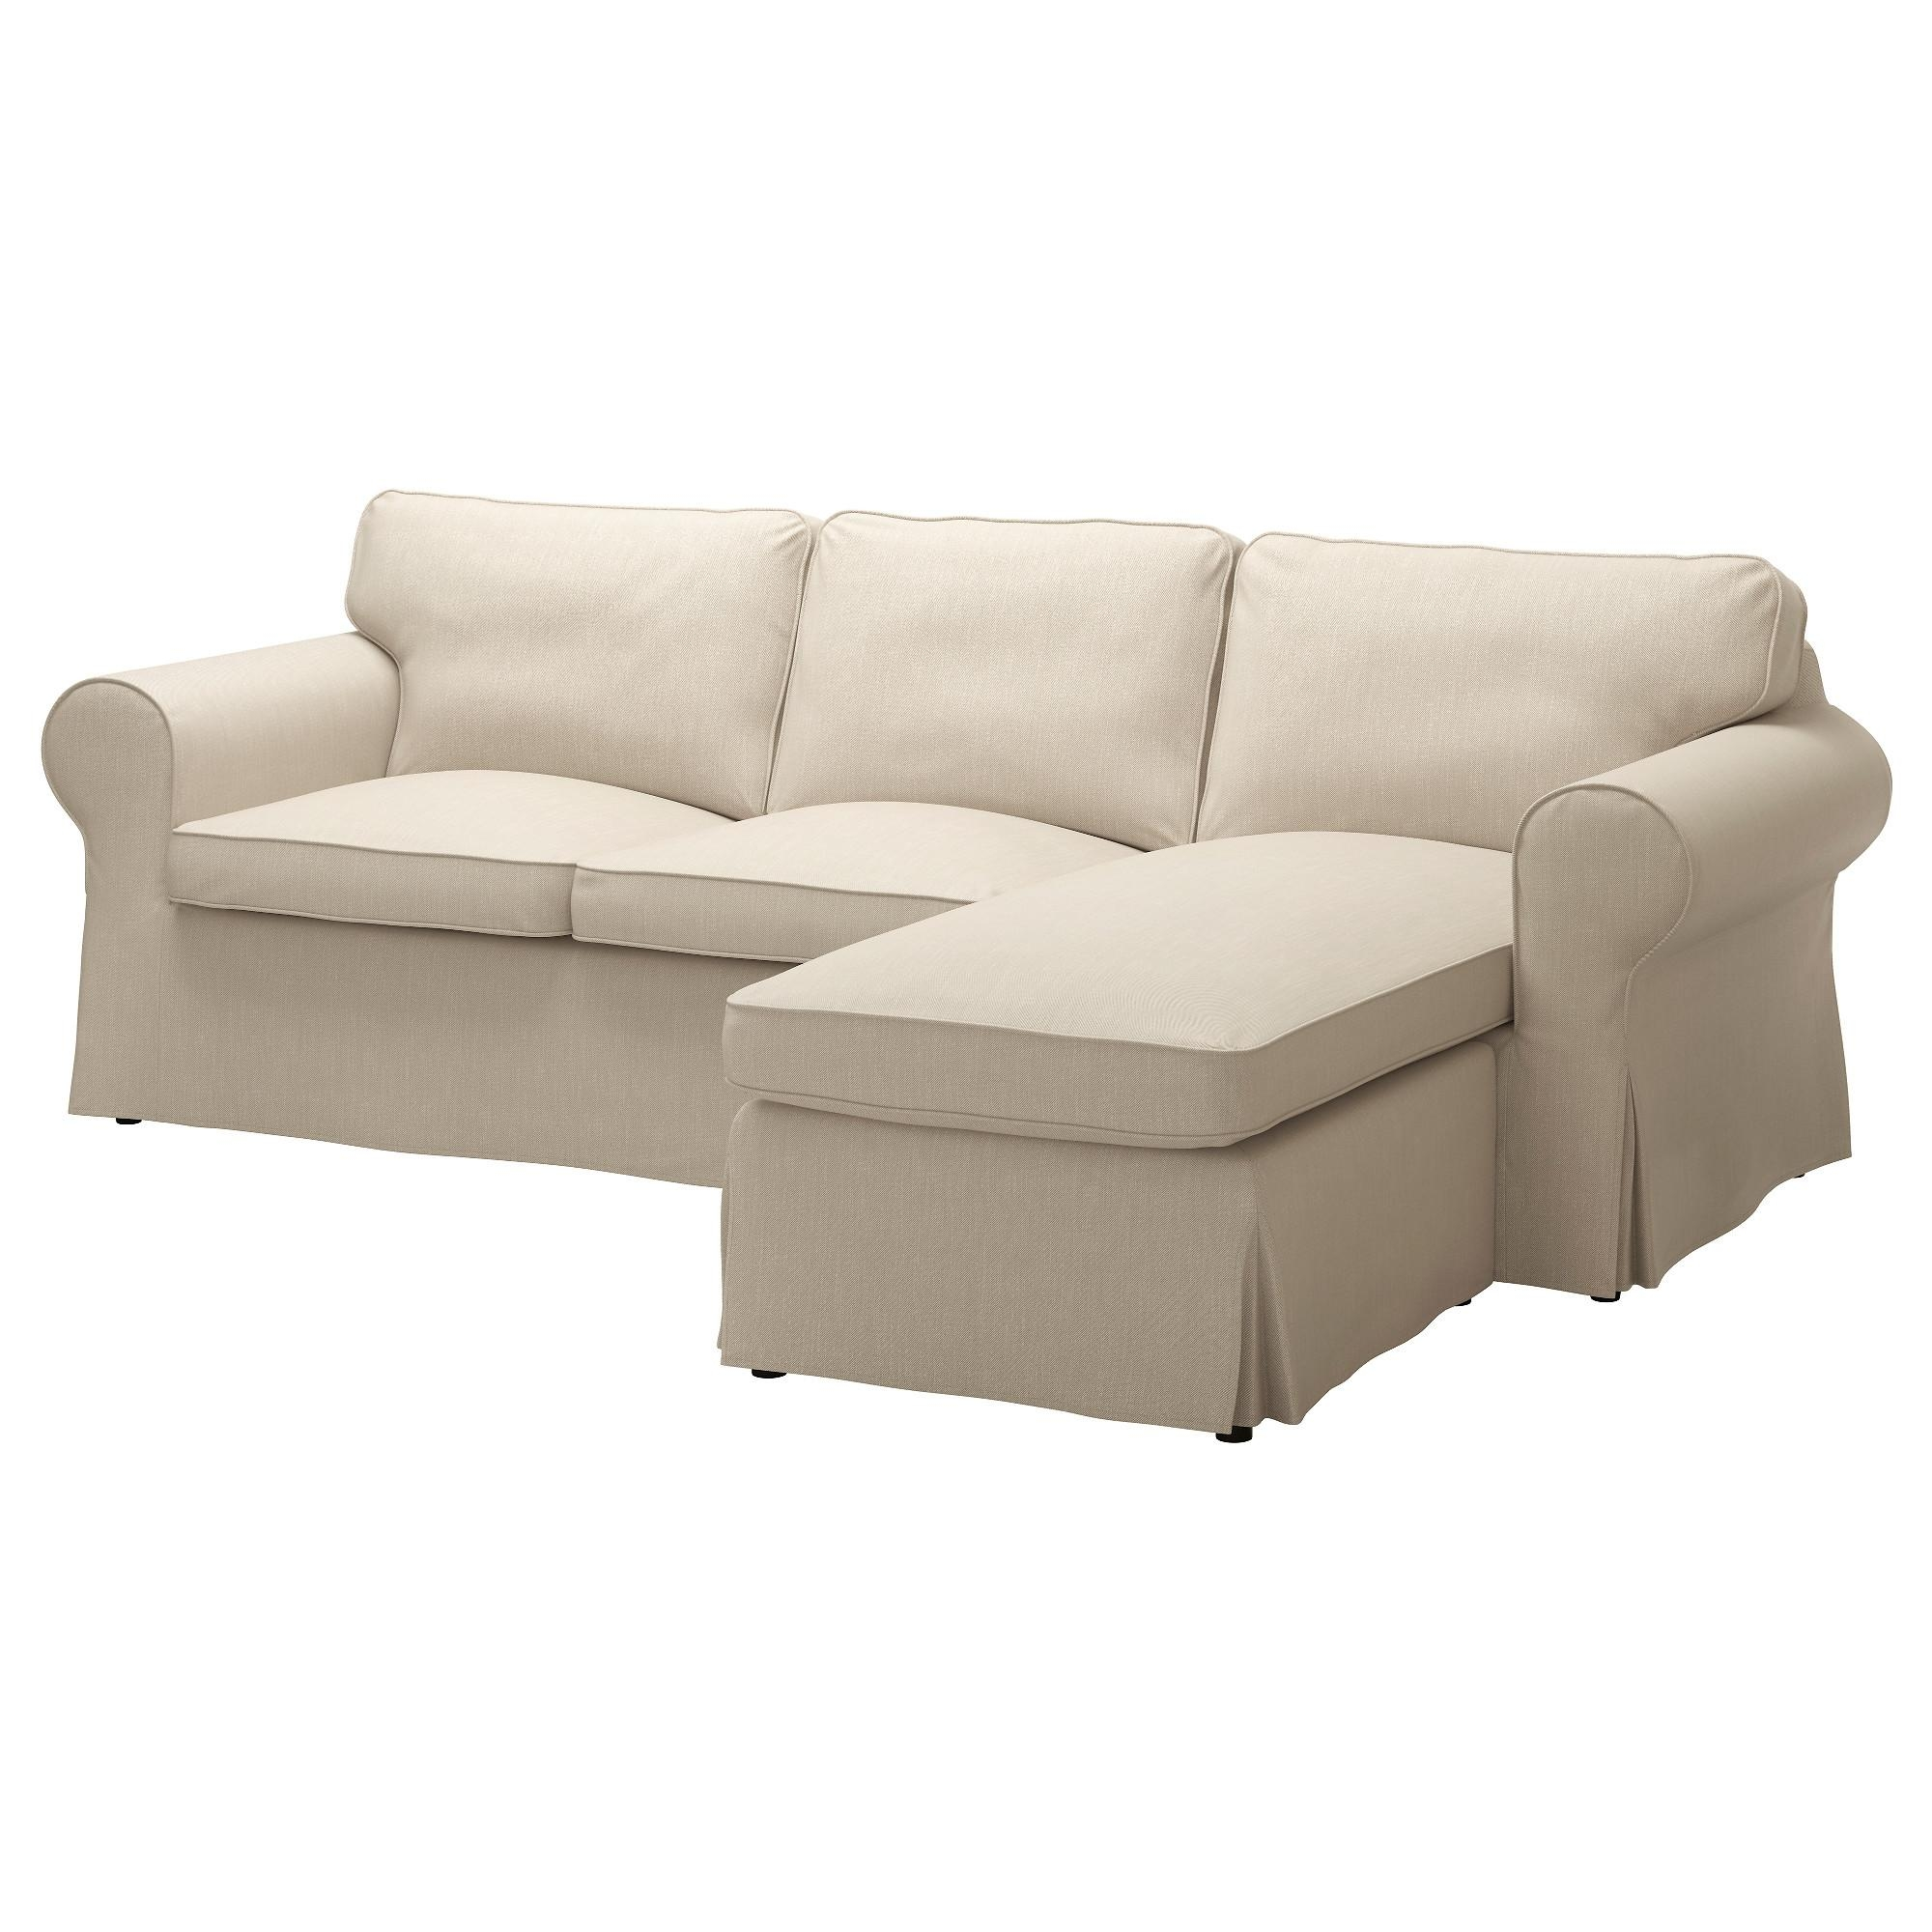 20 photos ikea chaise lounge sofa